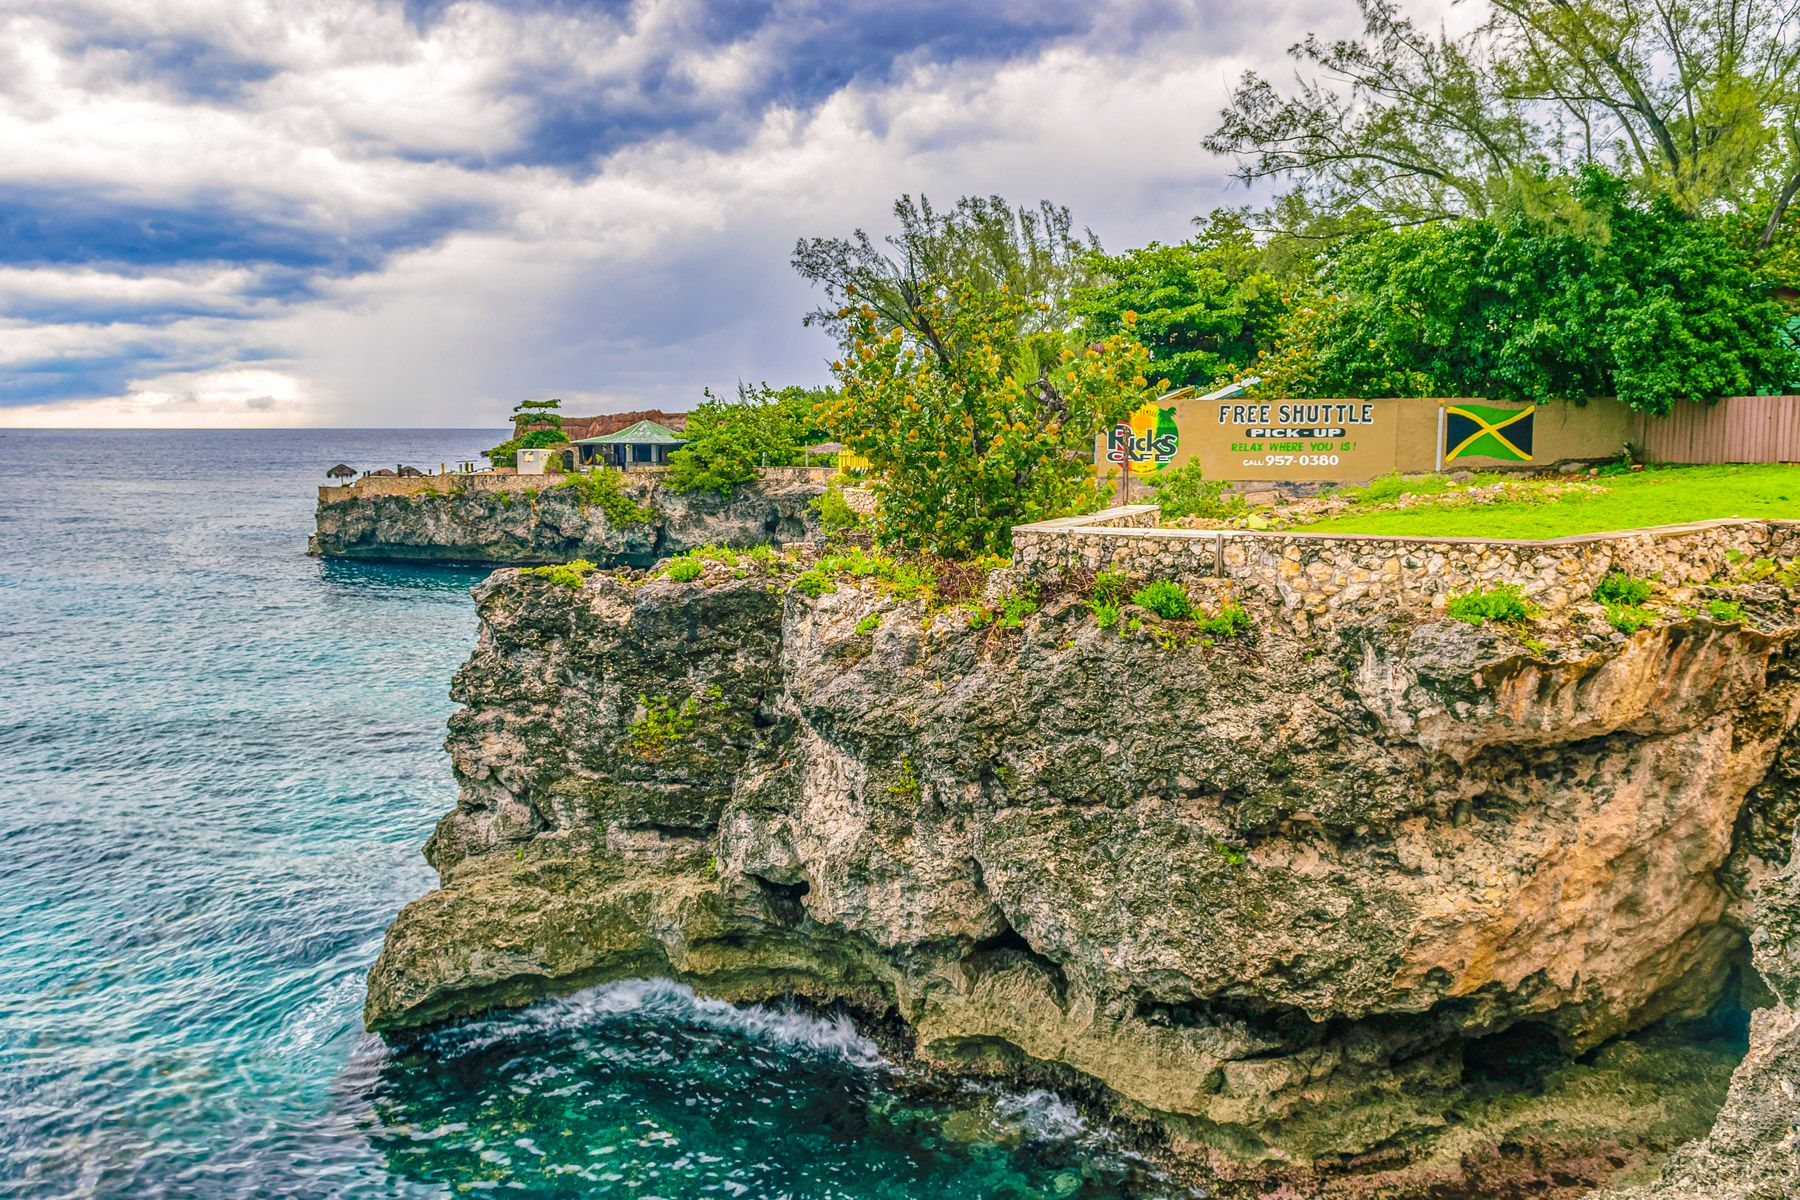 ricks cafe cliff view negril jamaica